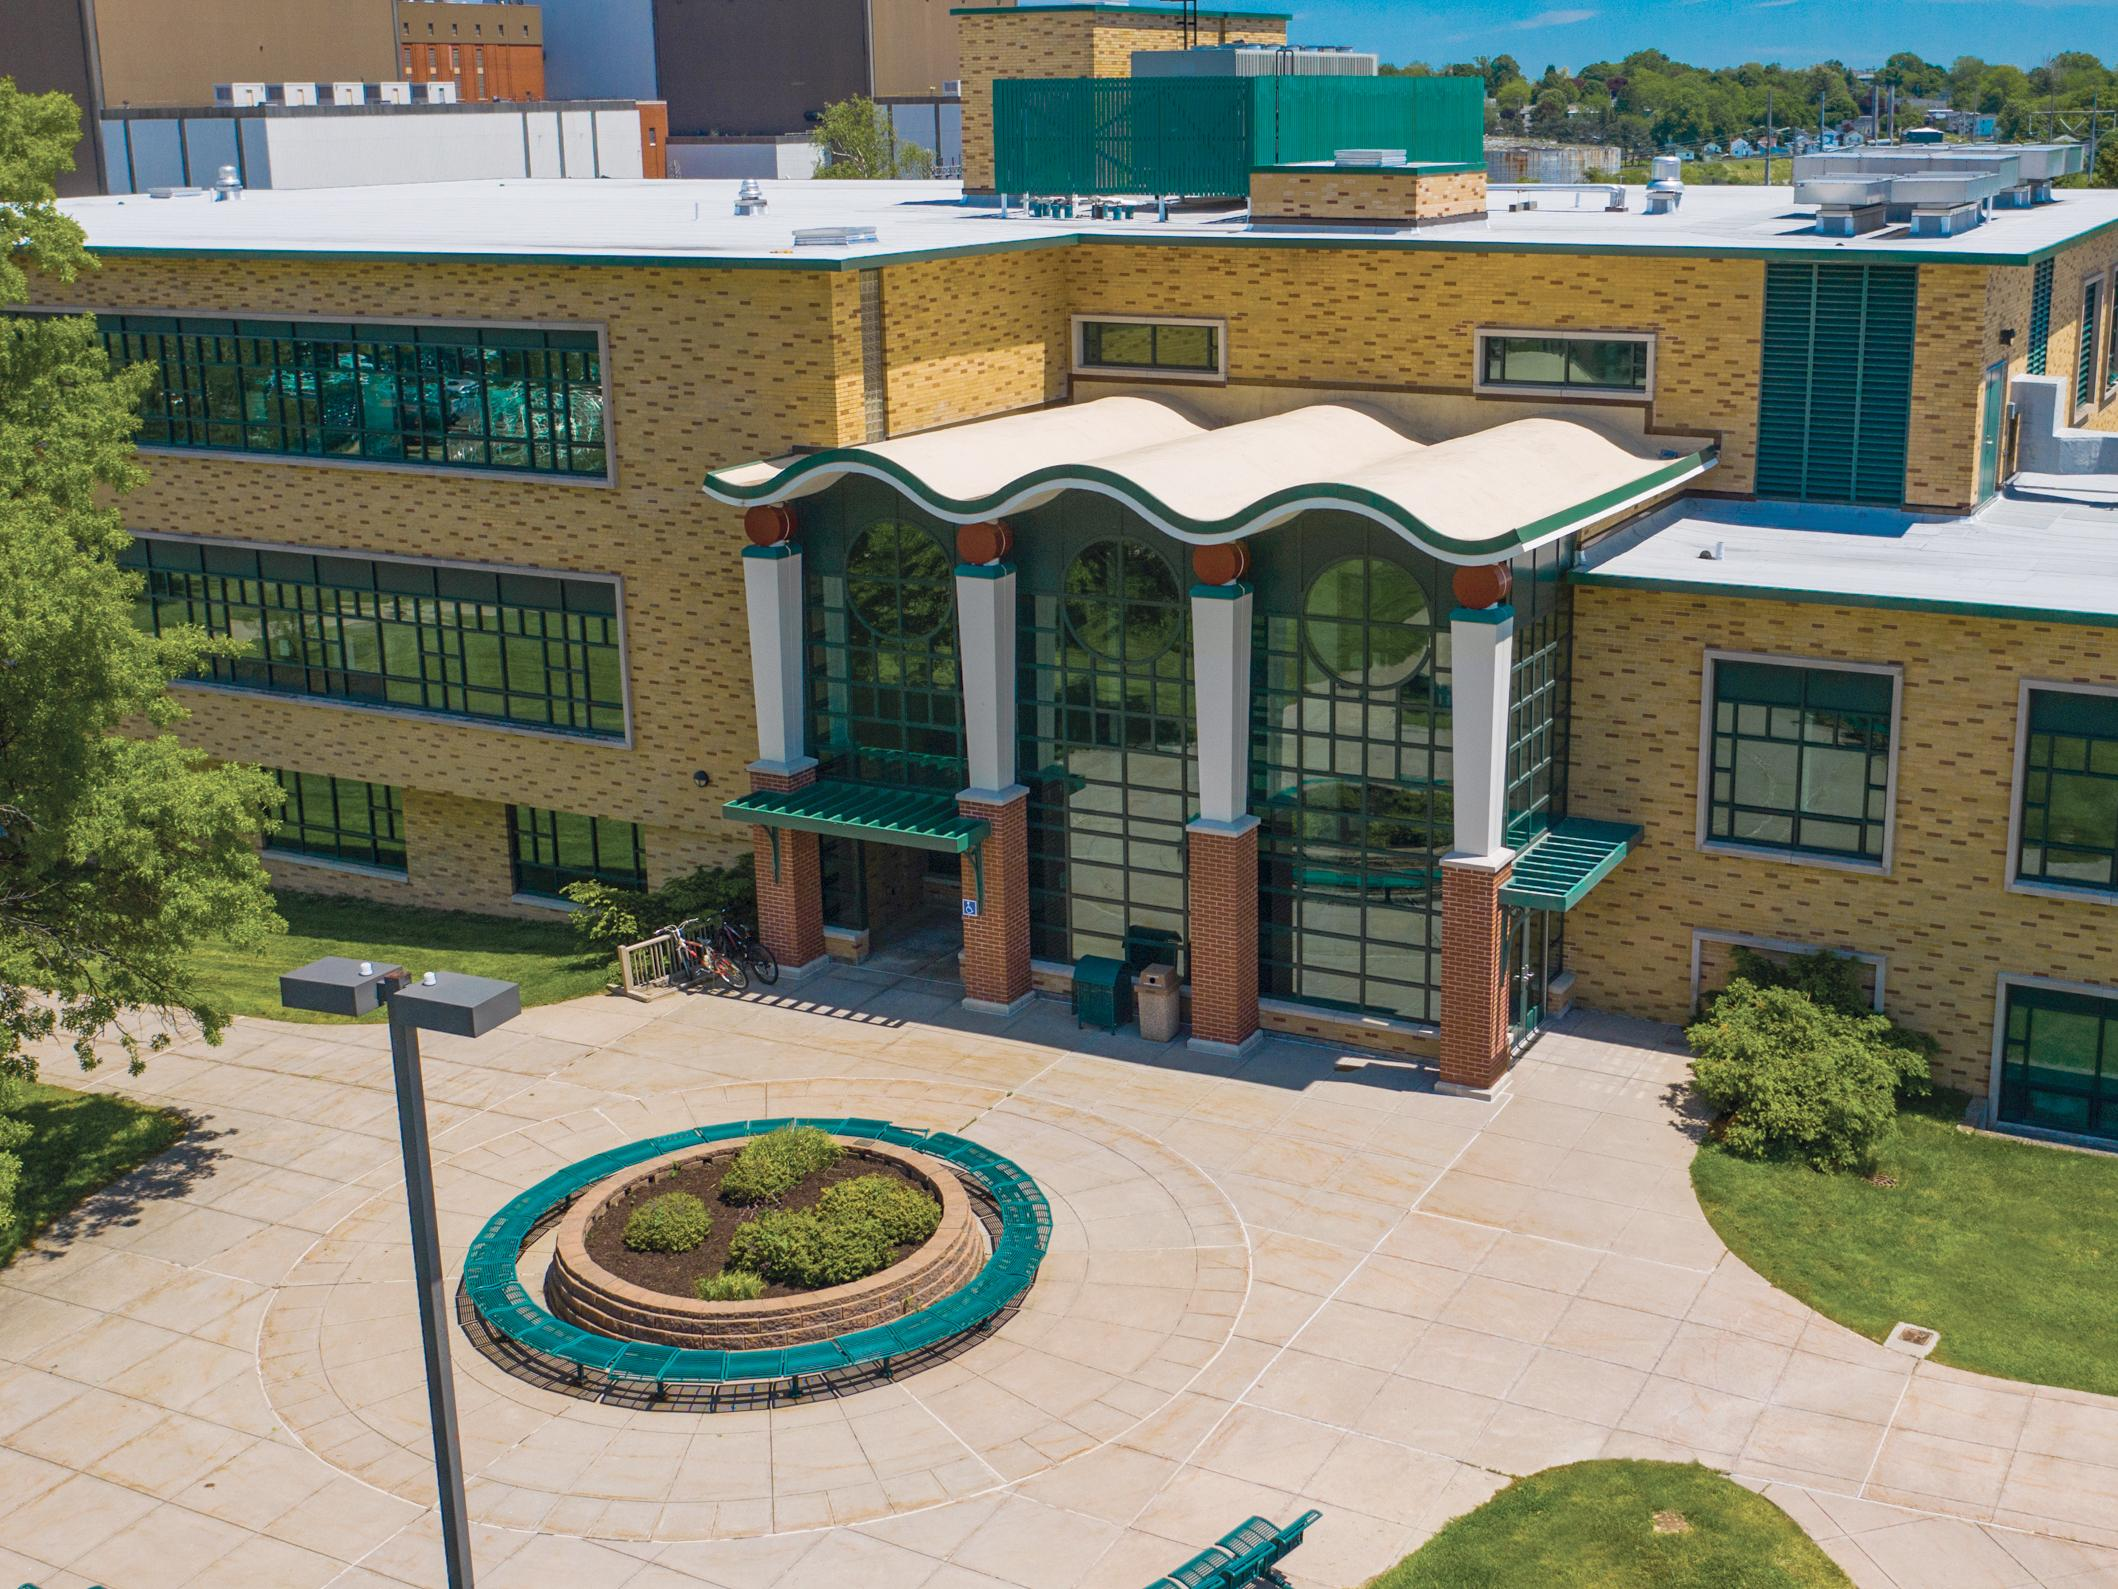 Aerial view of Rich Hall, home of the SUNY Oswego School of Business